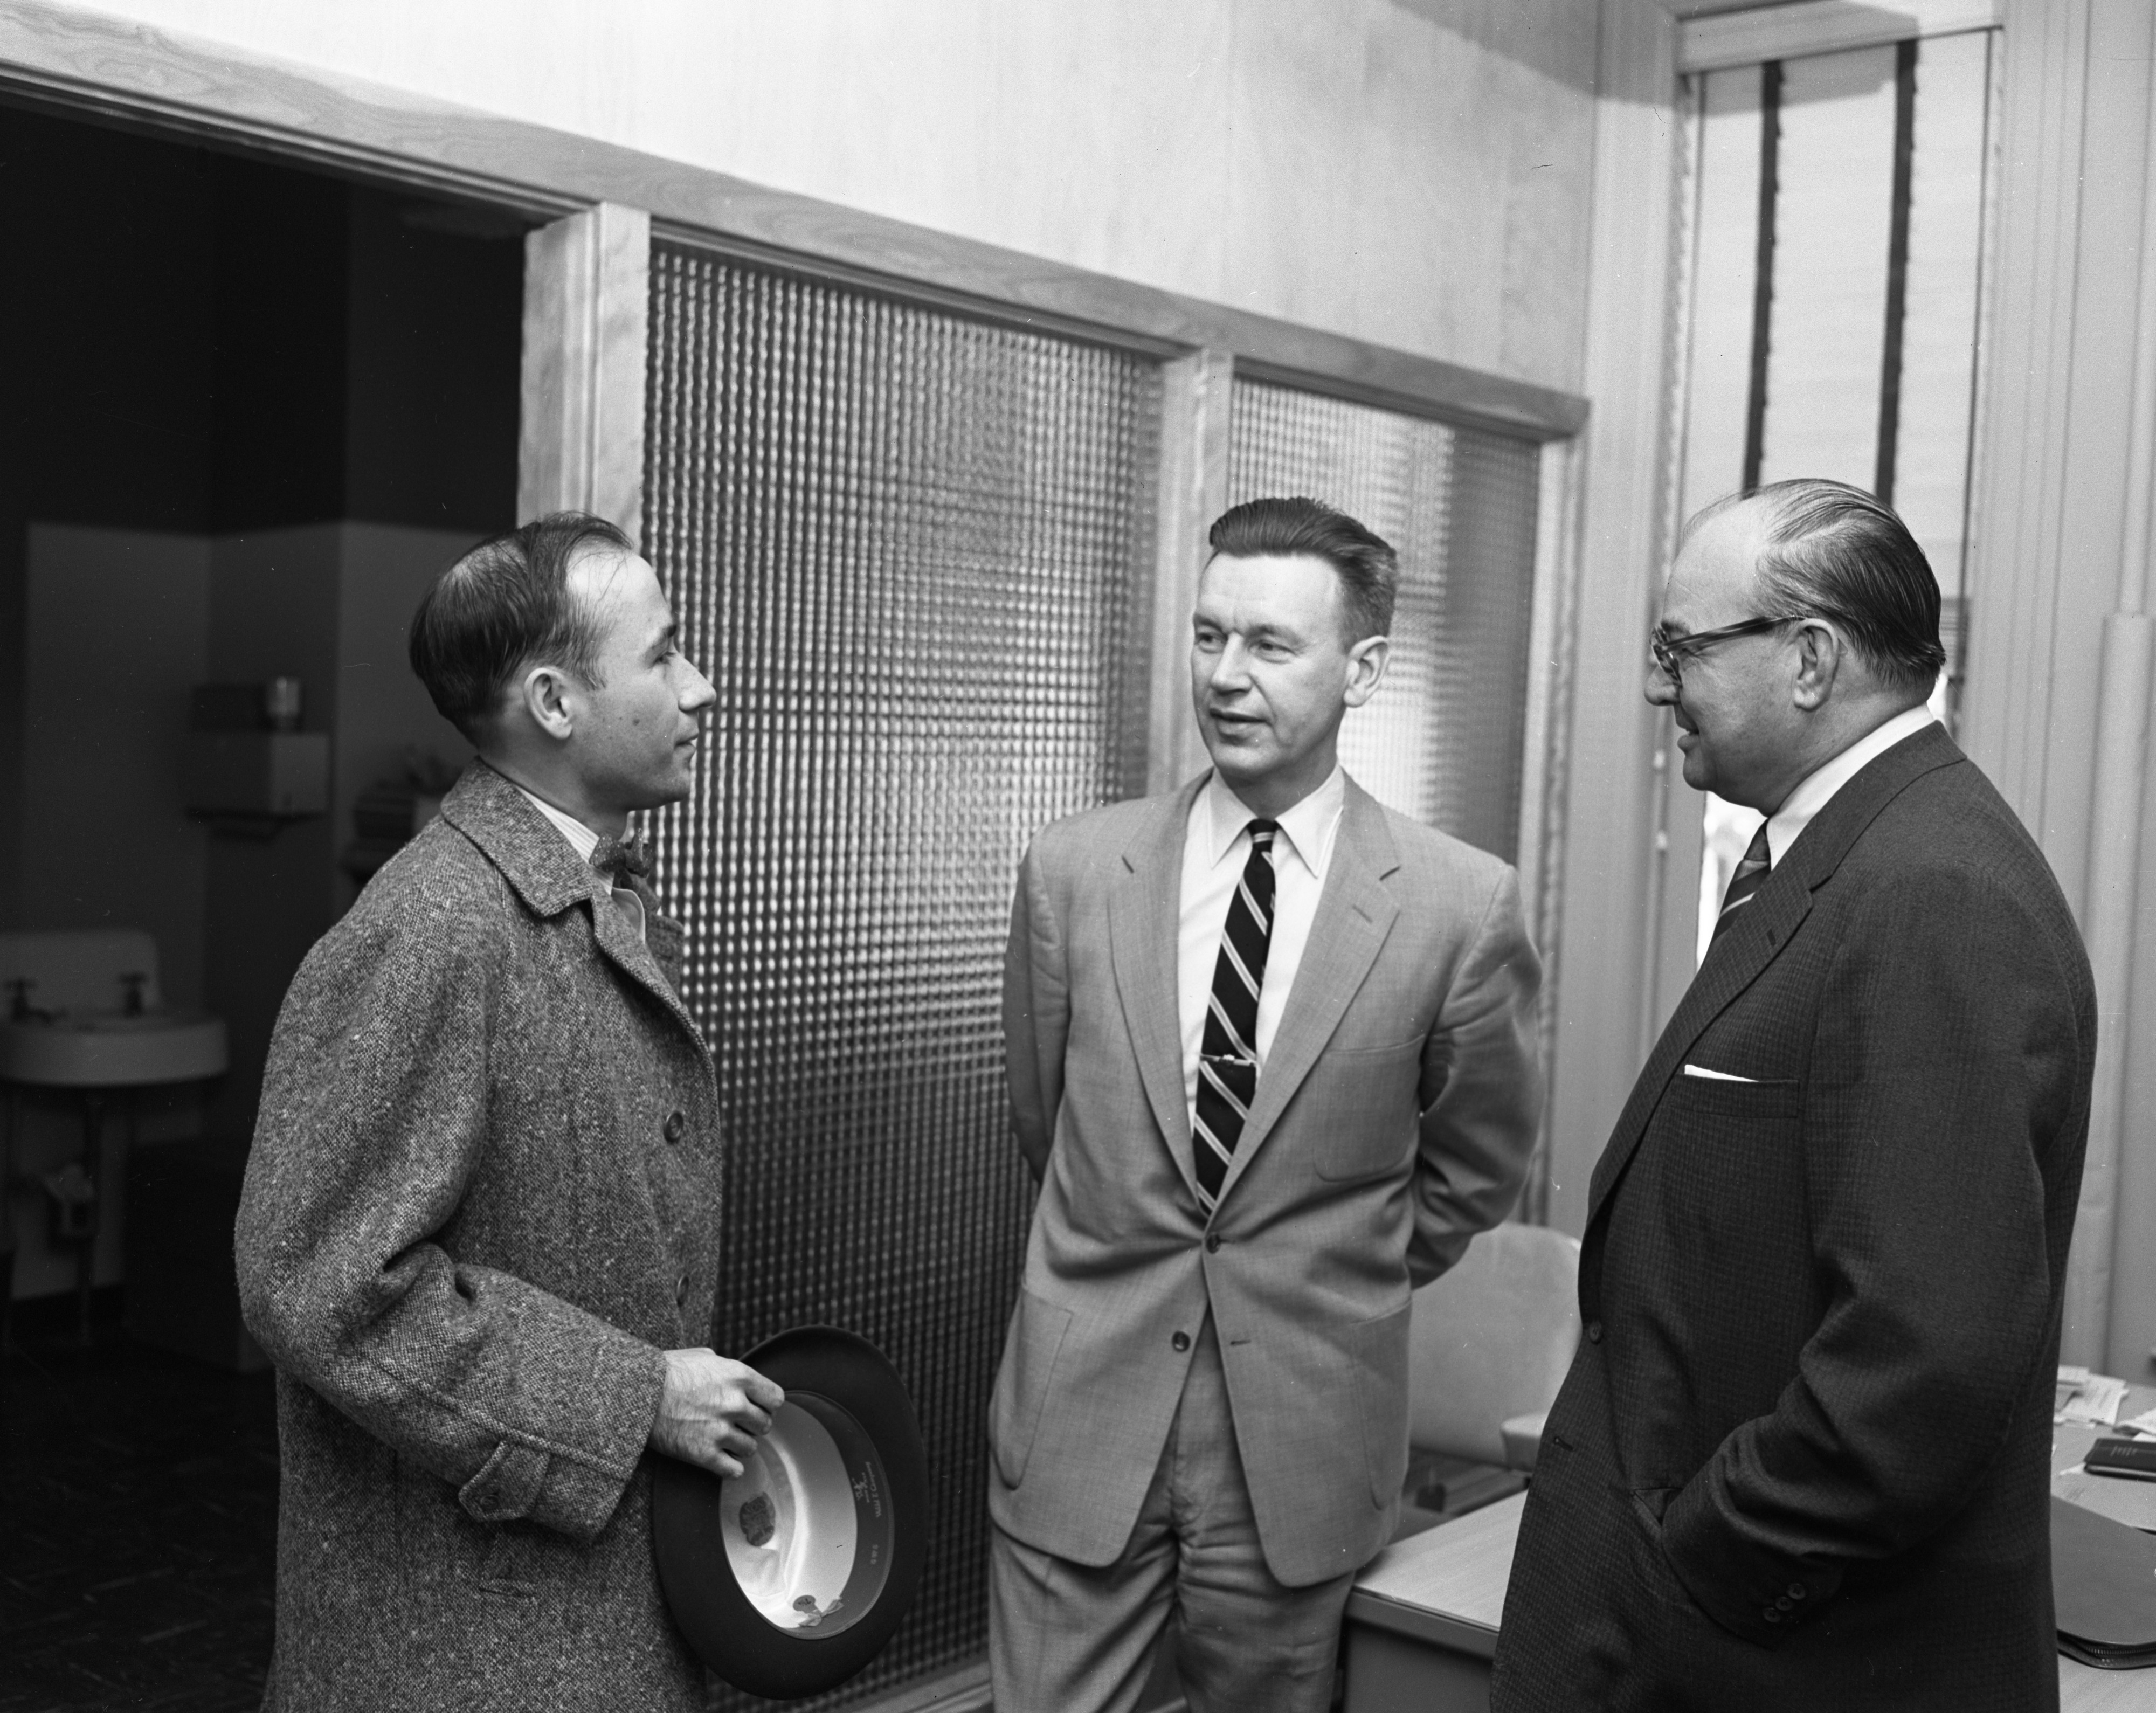 Guy C. Larcom, Jr., Ann Arbor's new city administrator, meets with George Sallade and Mayor William E. Brown, April 1956 image